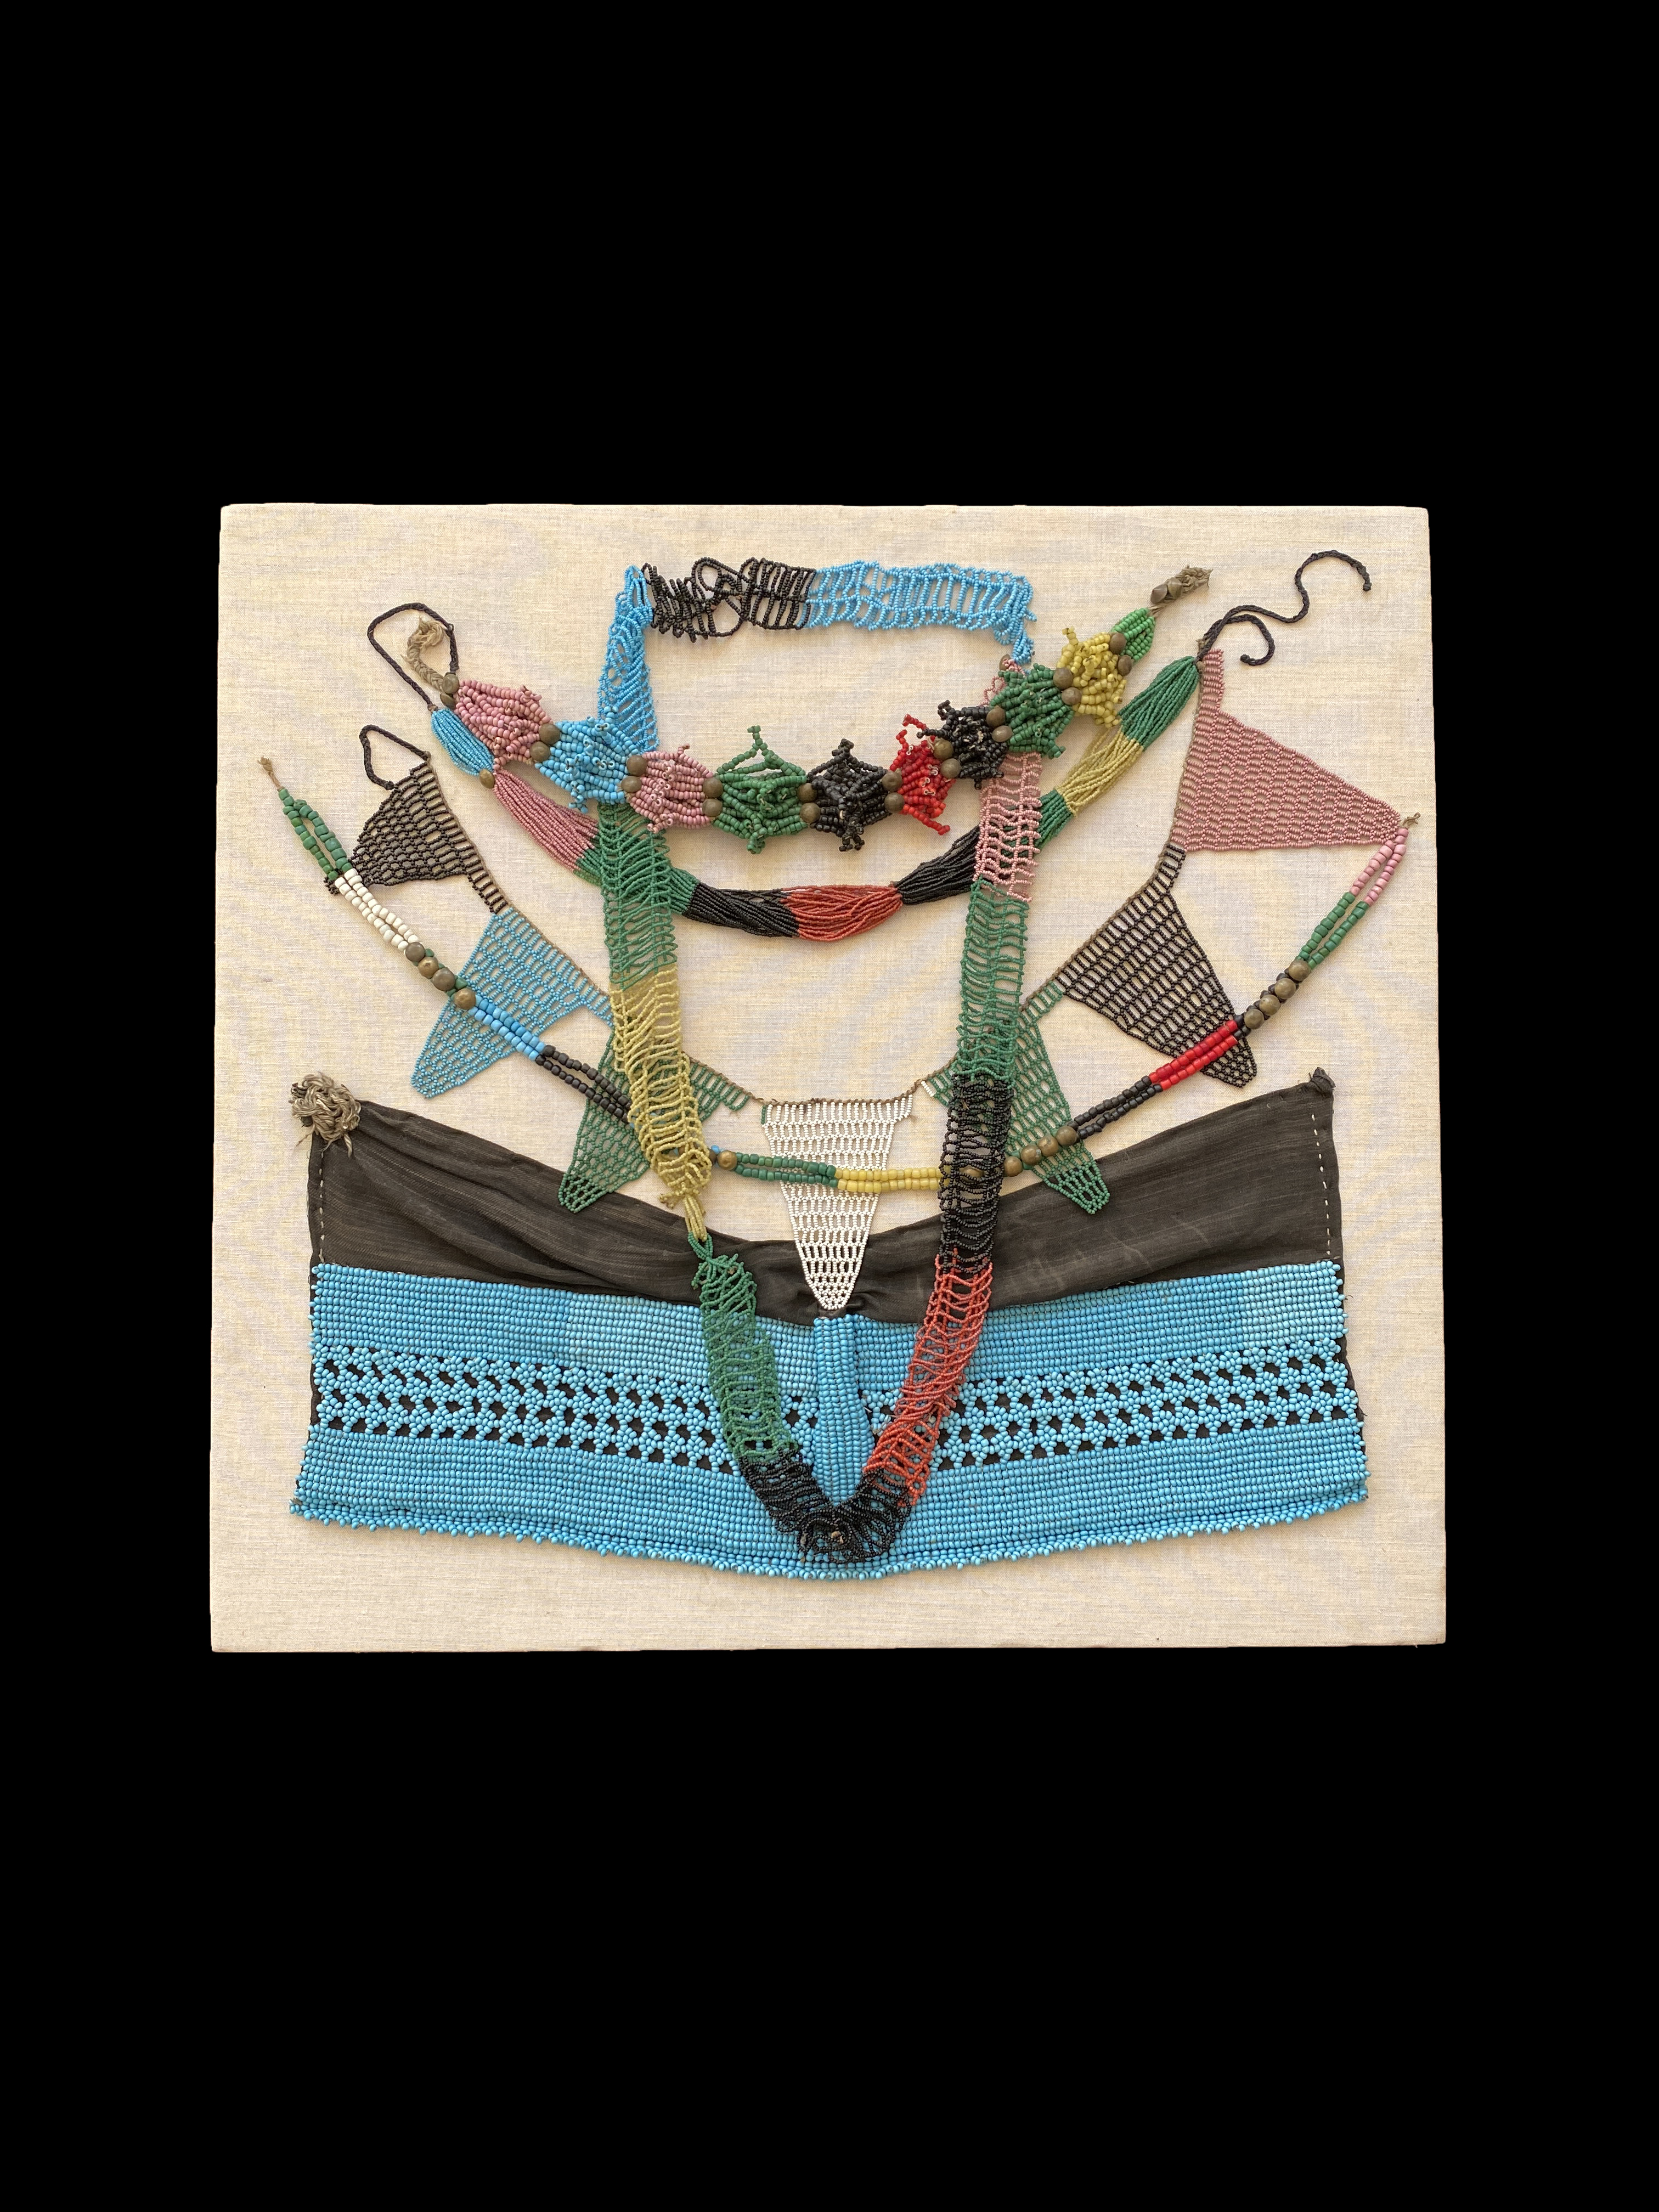 Mounted Assemblage of Beaded Traditional Adornments - Zulu People, South Africa